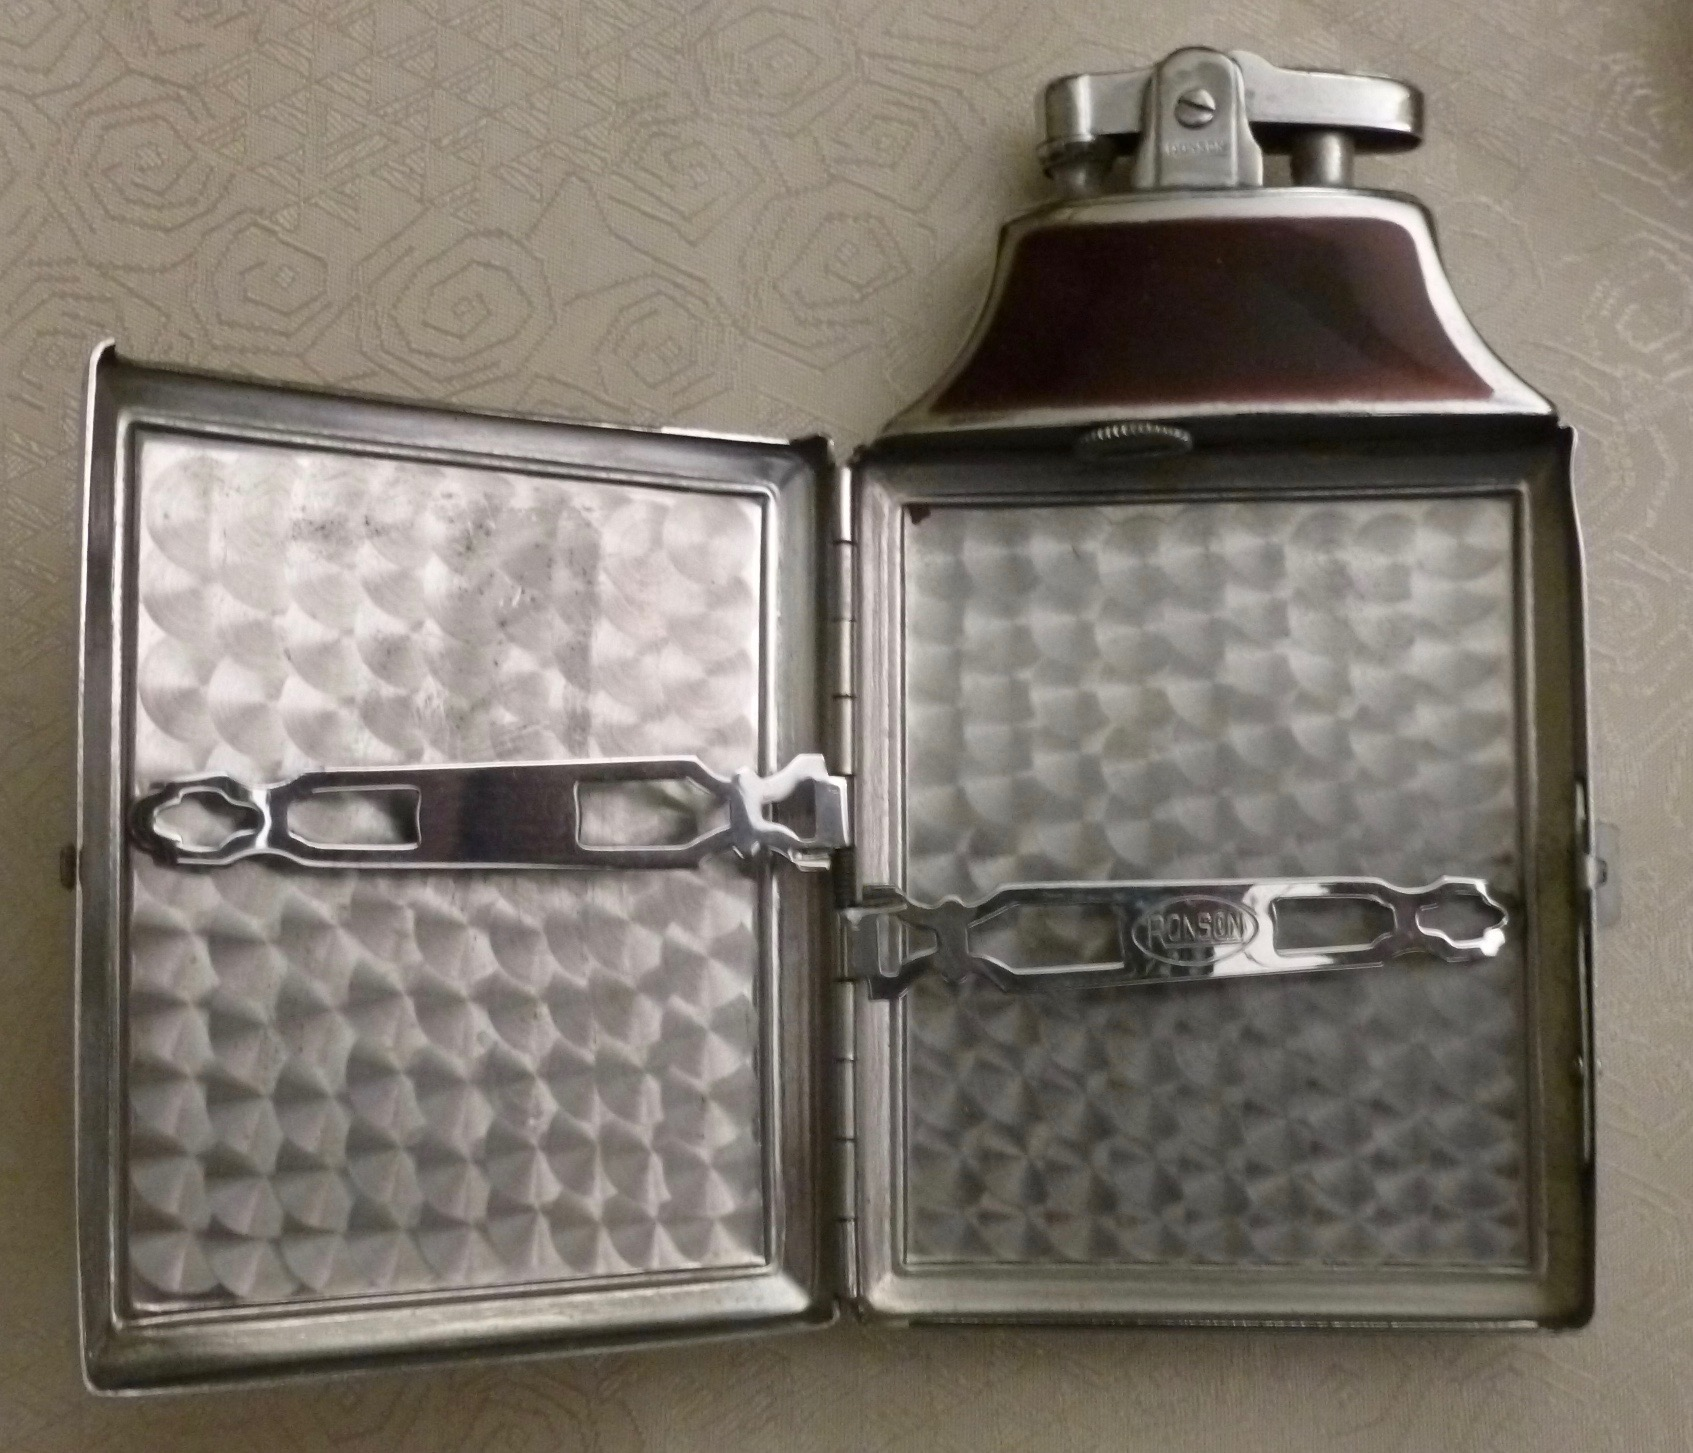 Ronson Art Deco Style Lighters From The 1930s From My Collection